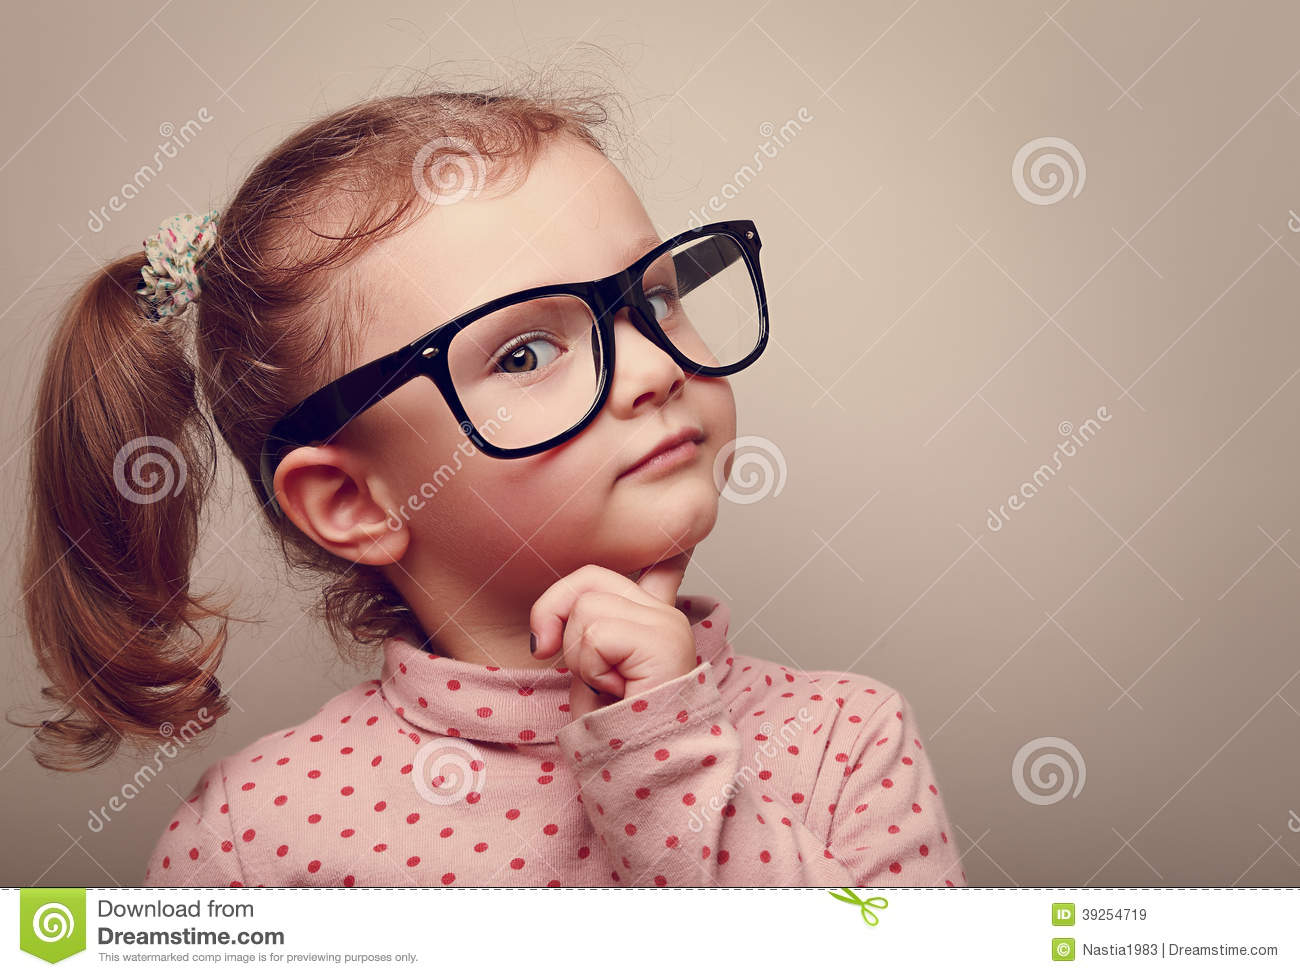 a81d26308a Thinking Kid Girl In Glasses Looking Happy Stock Image - Image of ...